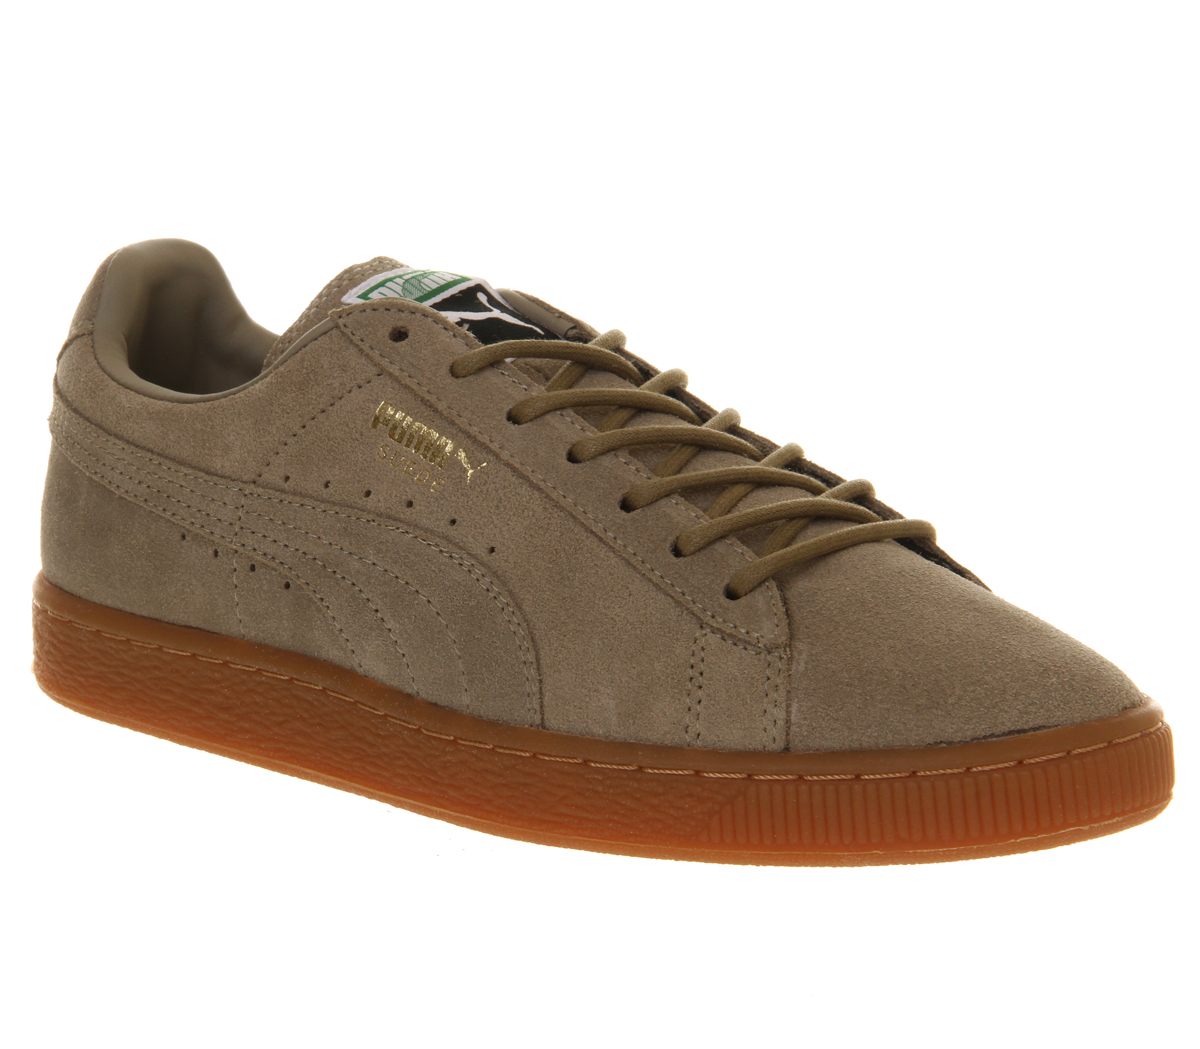 Mens-Puma-Suede-Classic-KHAKI-GUM-Trainers-Shoes